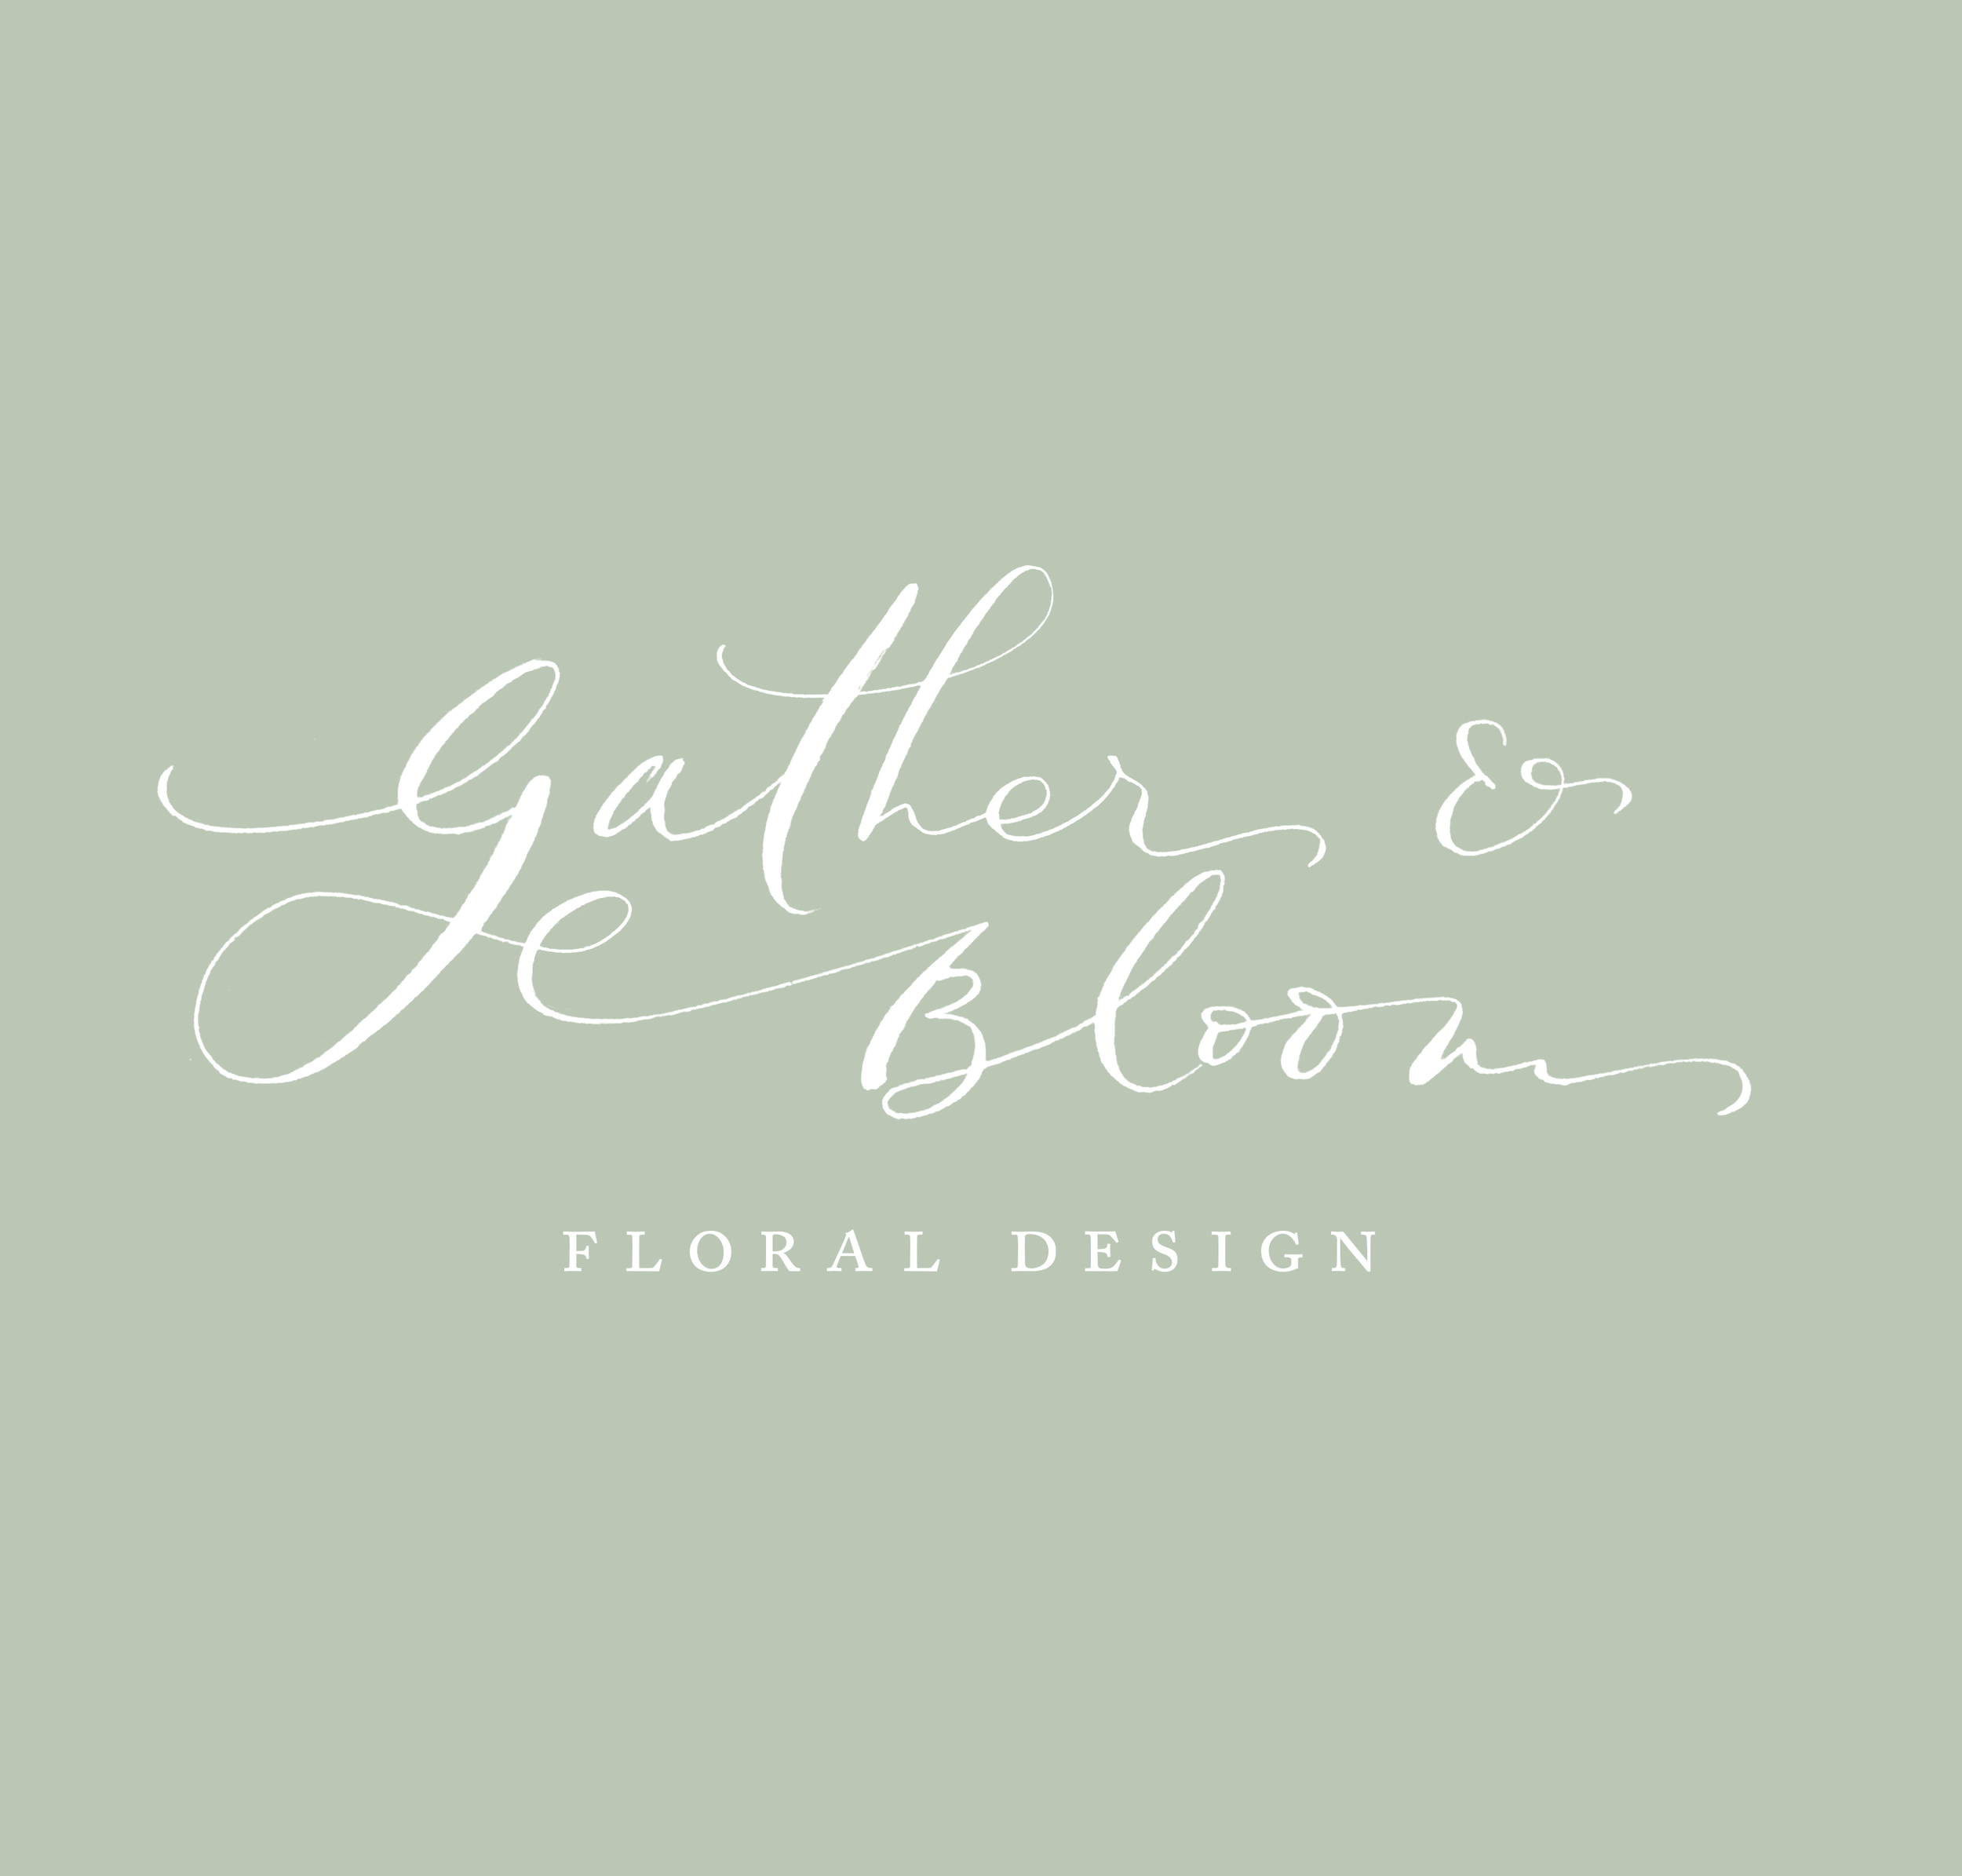 An alternative option I created for Gather & Bloom